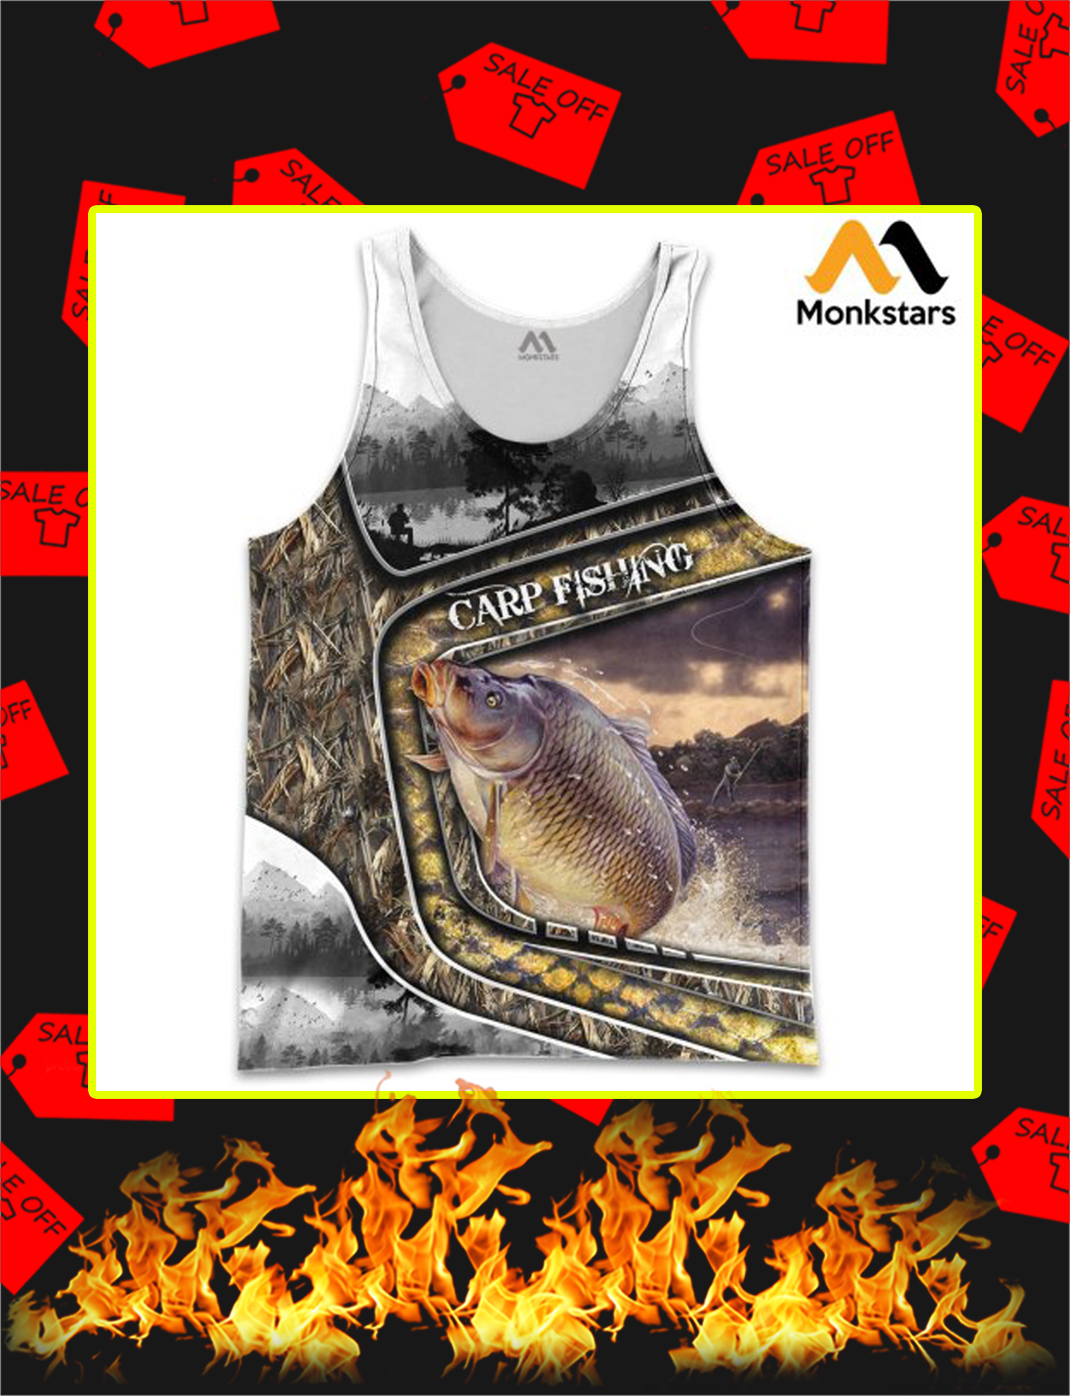 Carp Fishing Camo 3D All Over Printed tank top